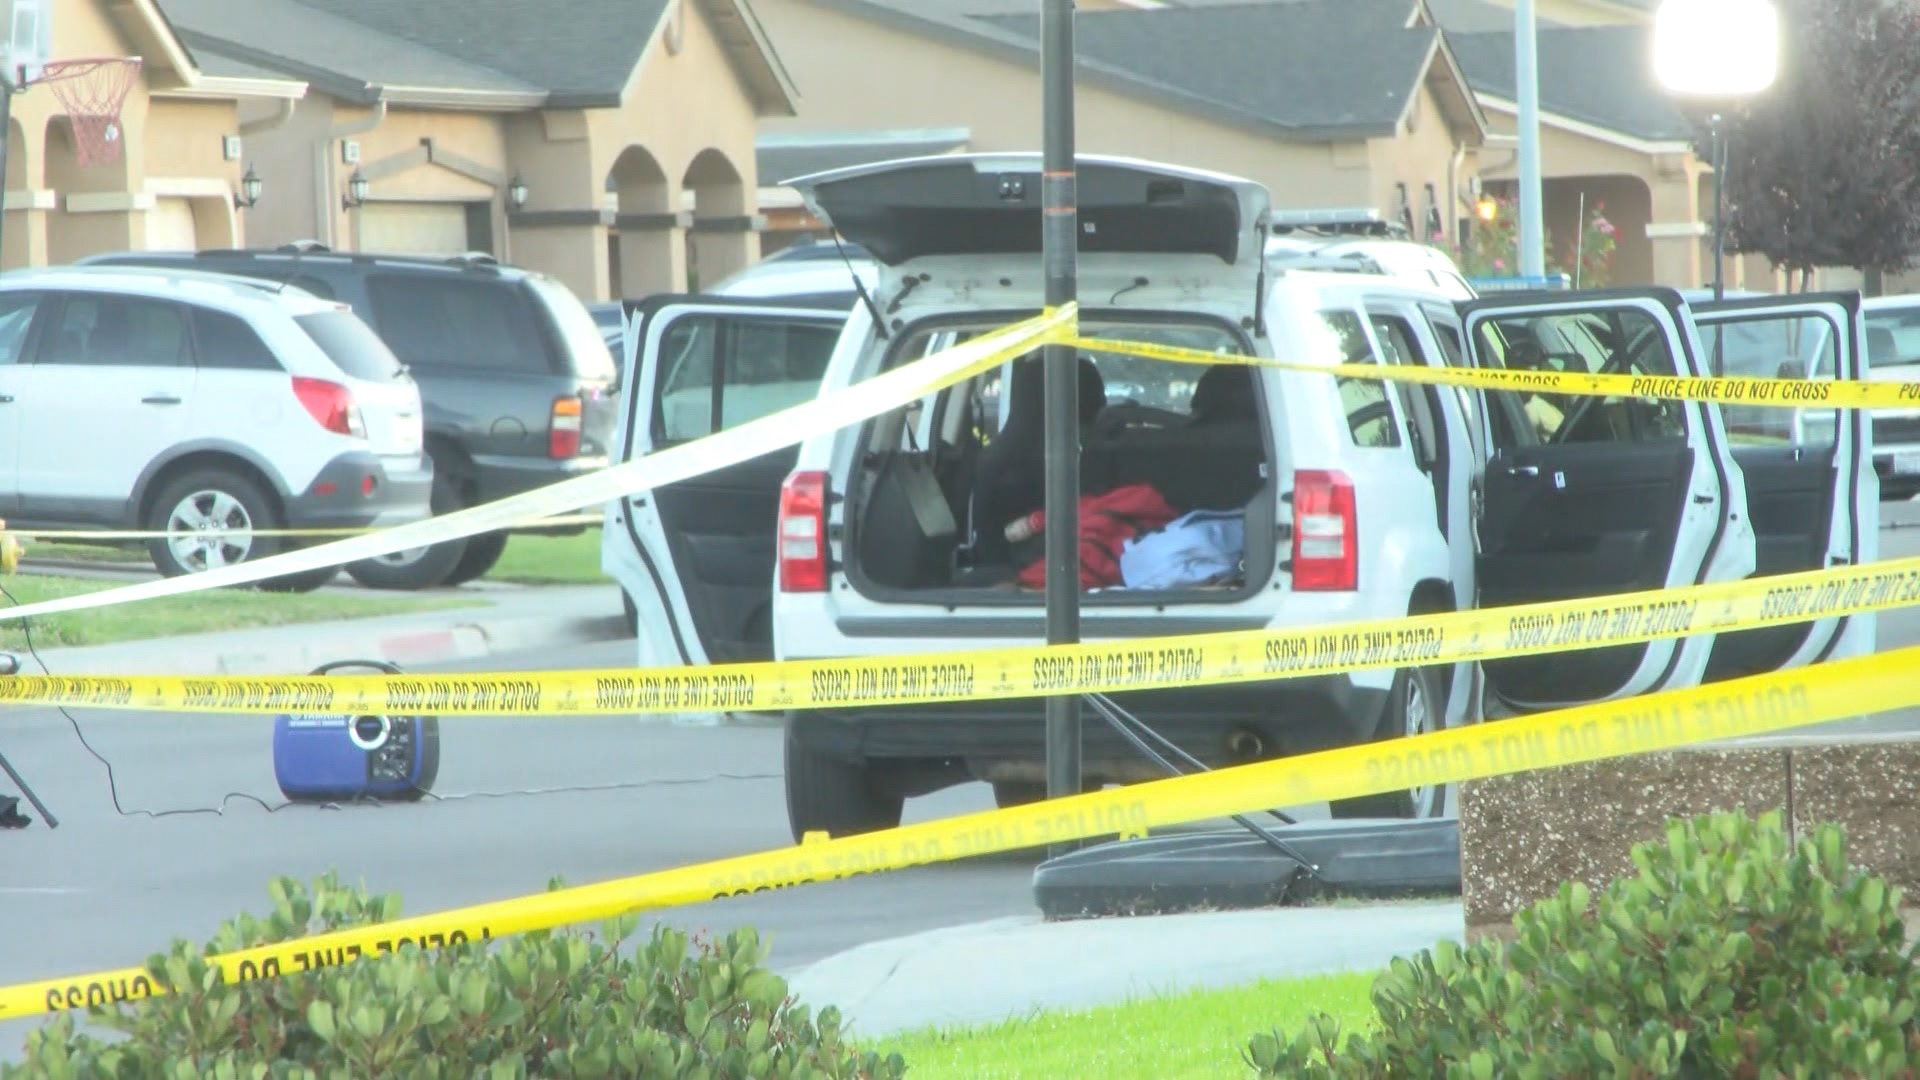 Victim identified in second fatal shooting in Parlier within 24 hours